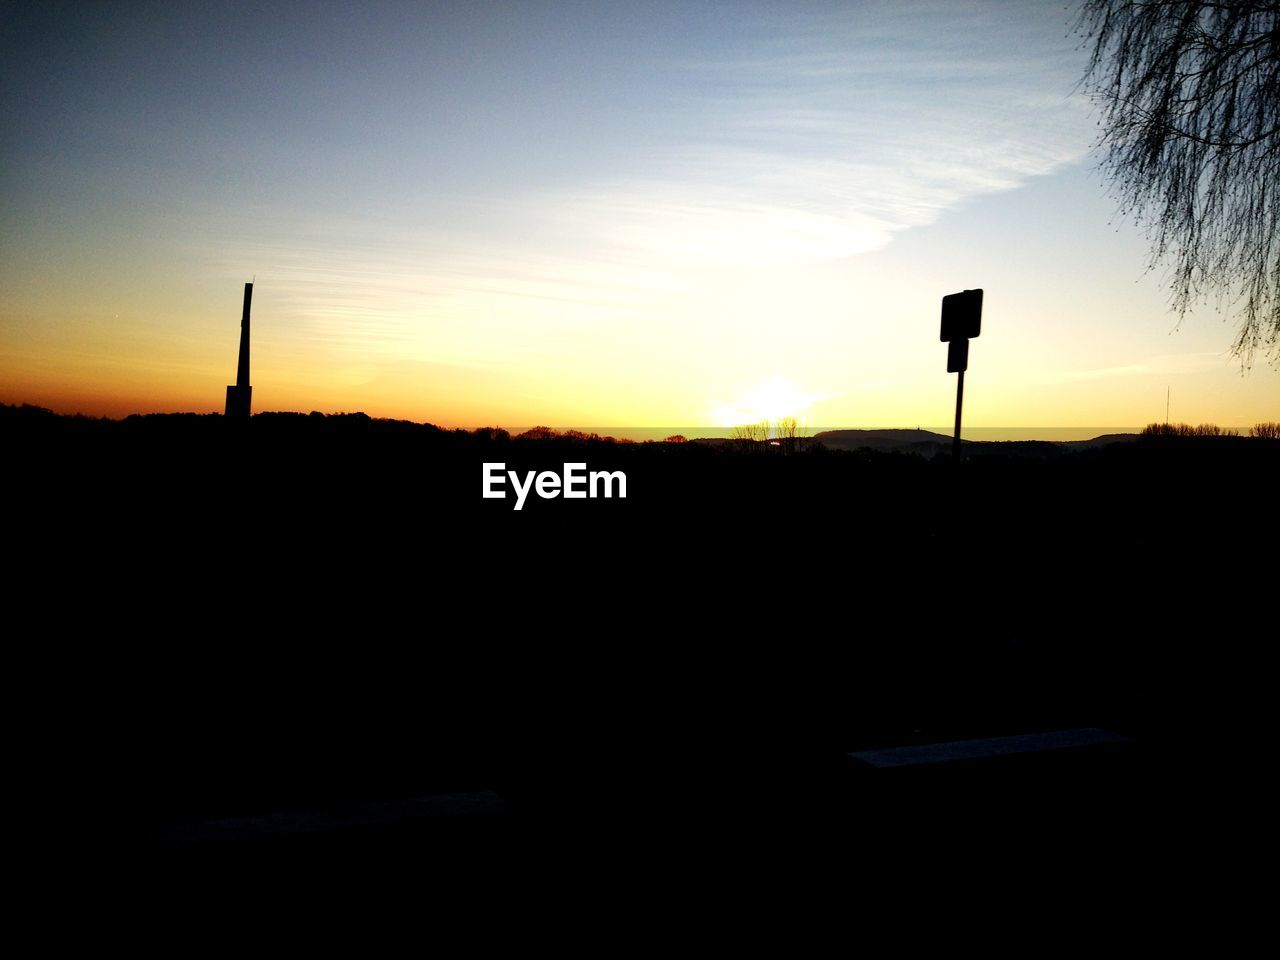 silhouette, sunset, nature, sky, no people, transportation, road sign, scenics, outdoors, beauty in nature, day